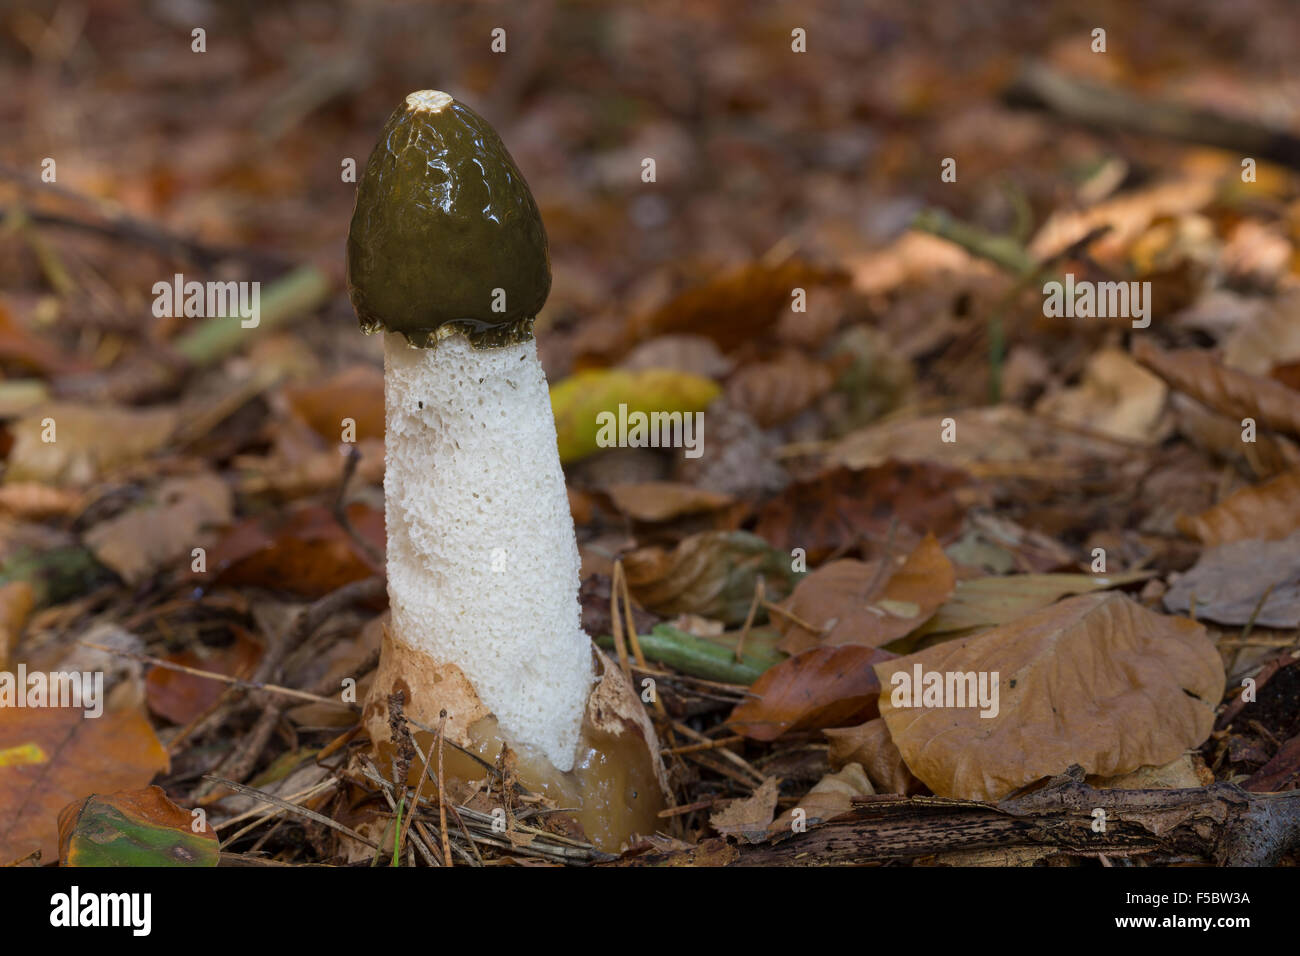 Common stinkhorn, common stink-horn, Gemeine Stinkmorchel, Stink-Morchel, Gichtmorchel, Leichenfinger, Phallus impudicus - Stock Image